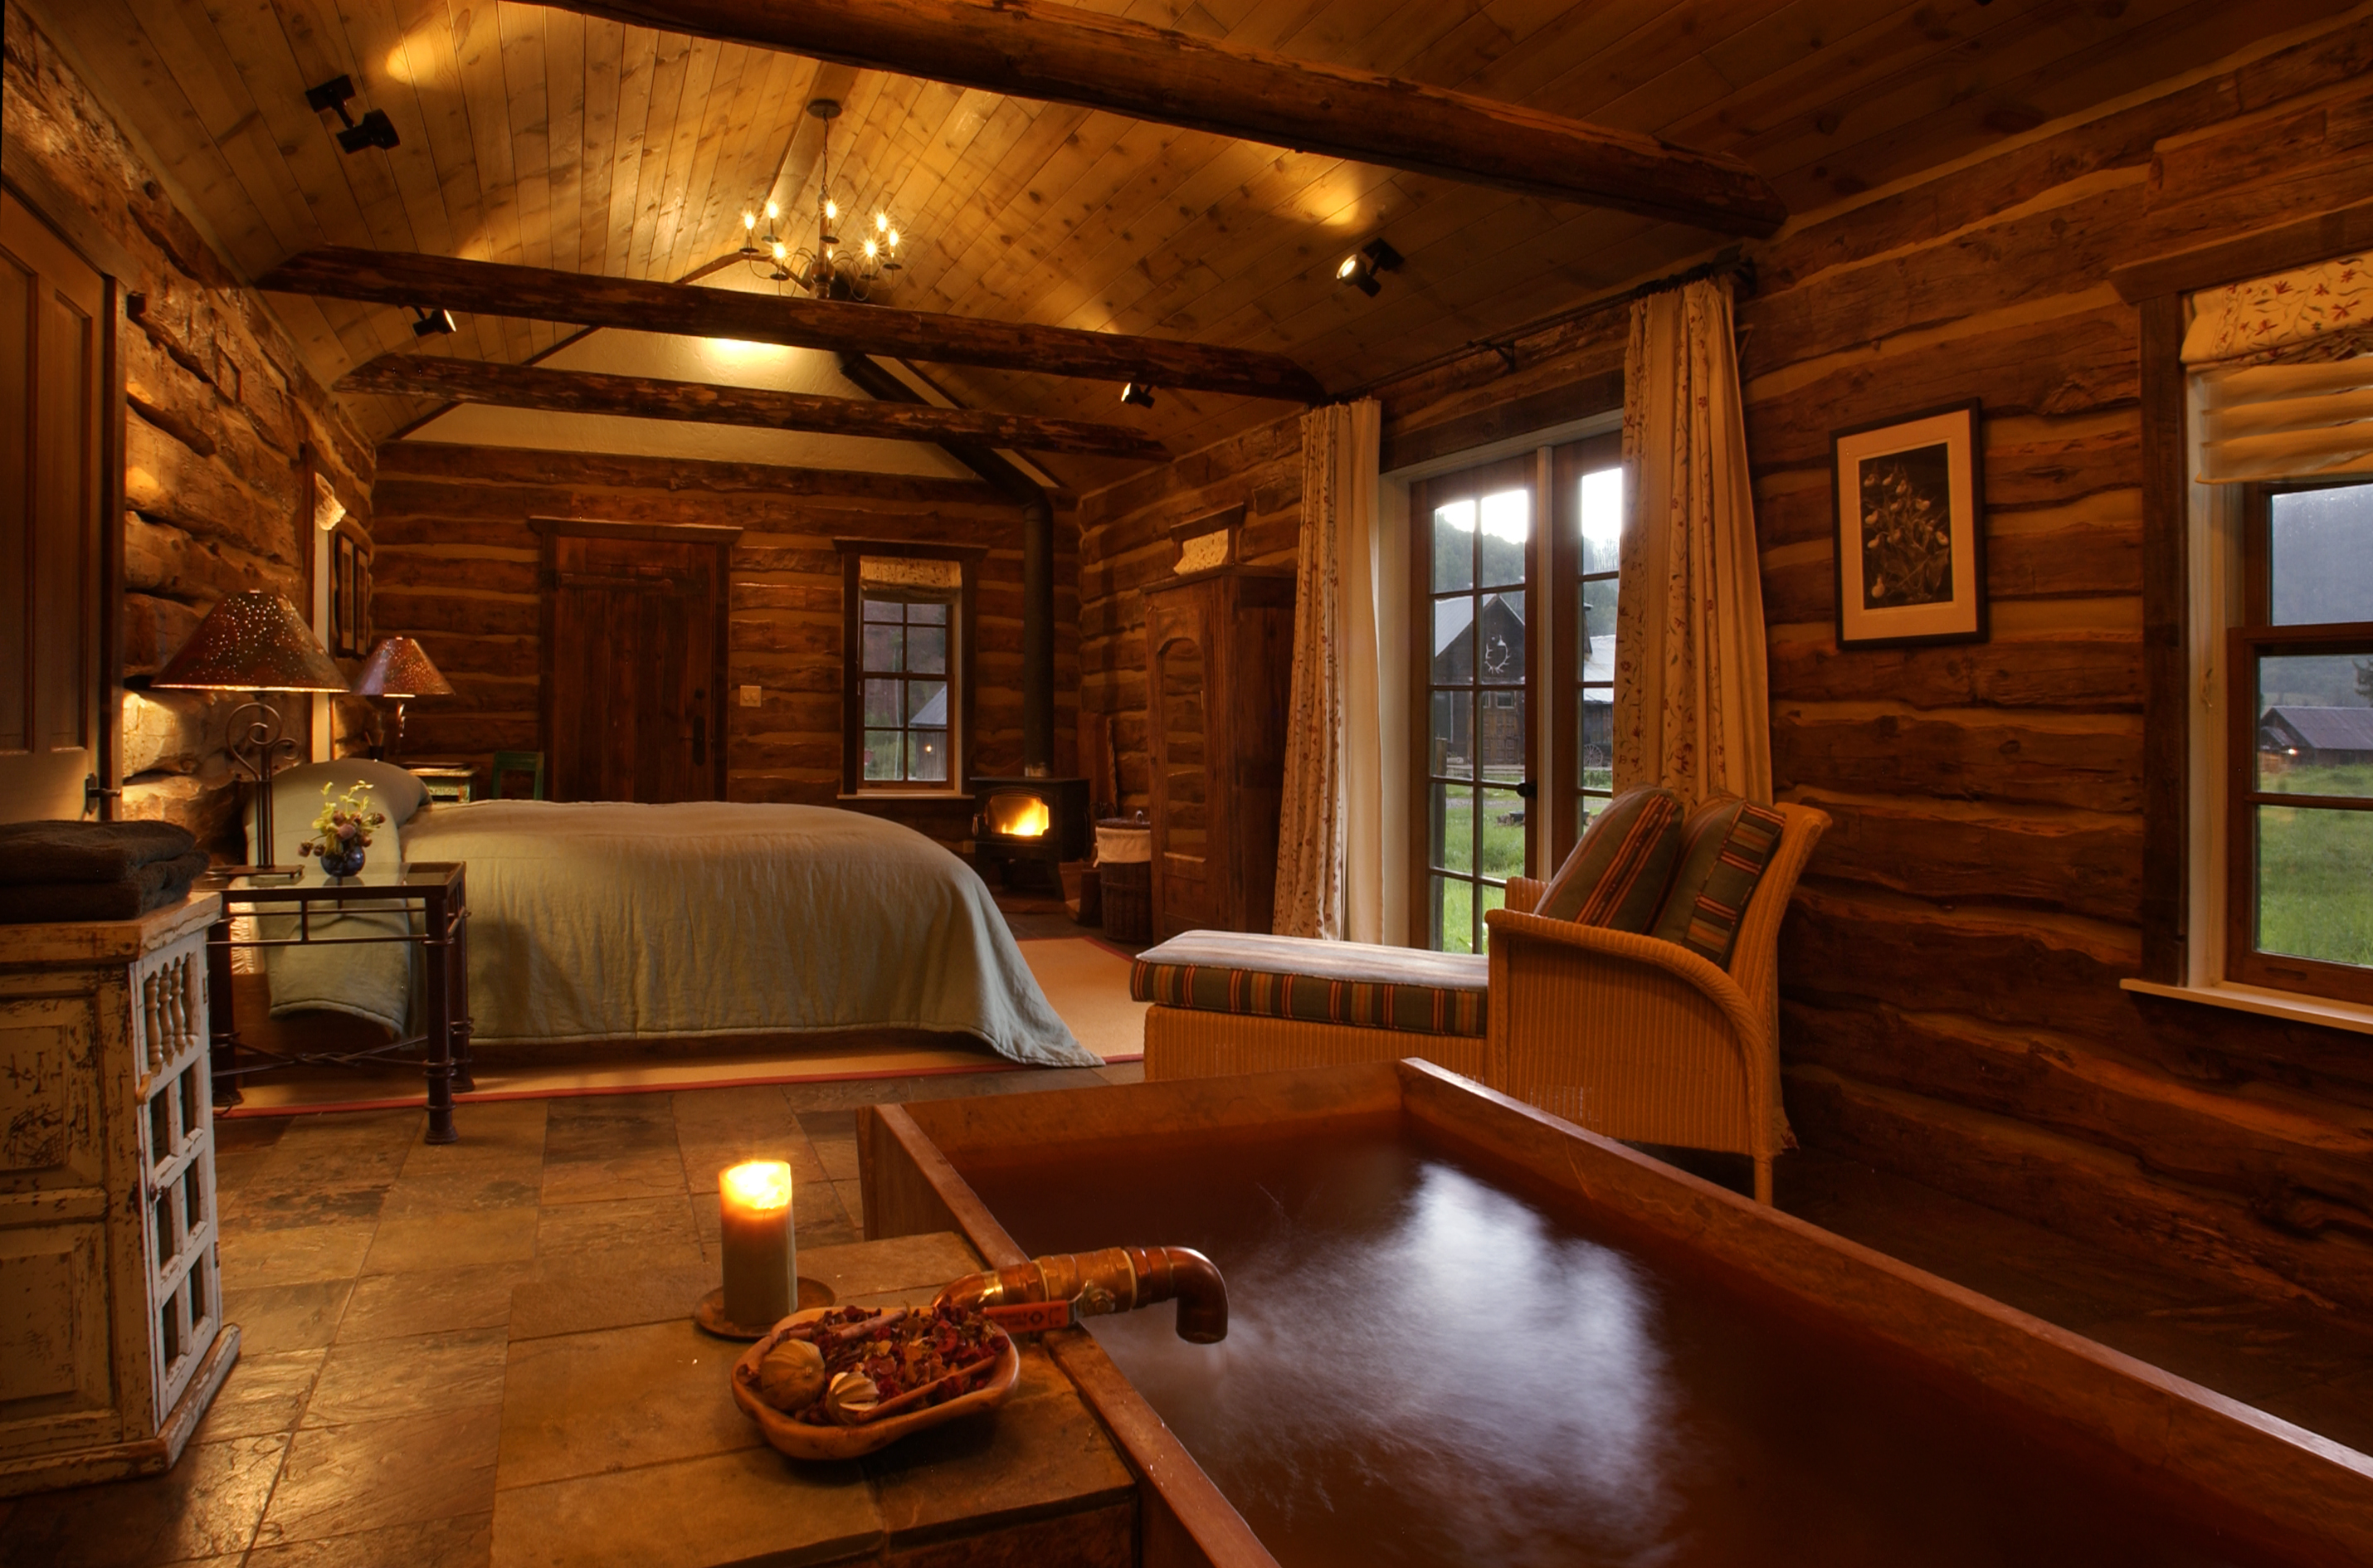 Cabin bedroom tumblr Interior cabin designs